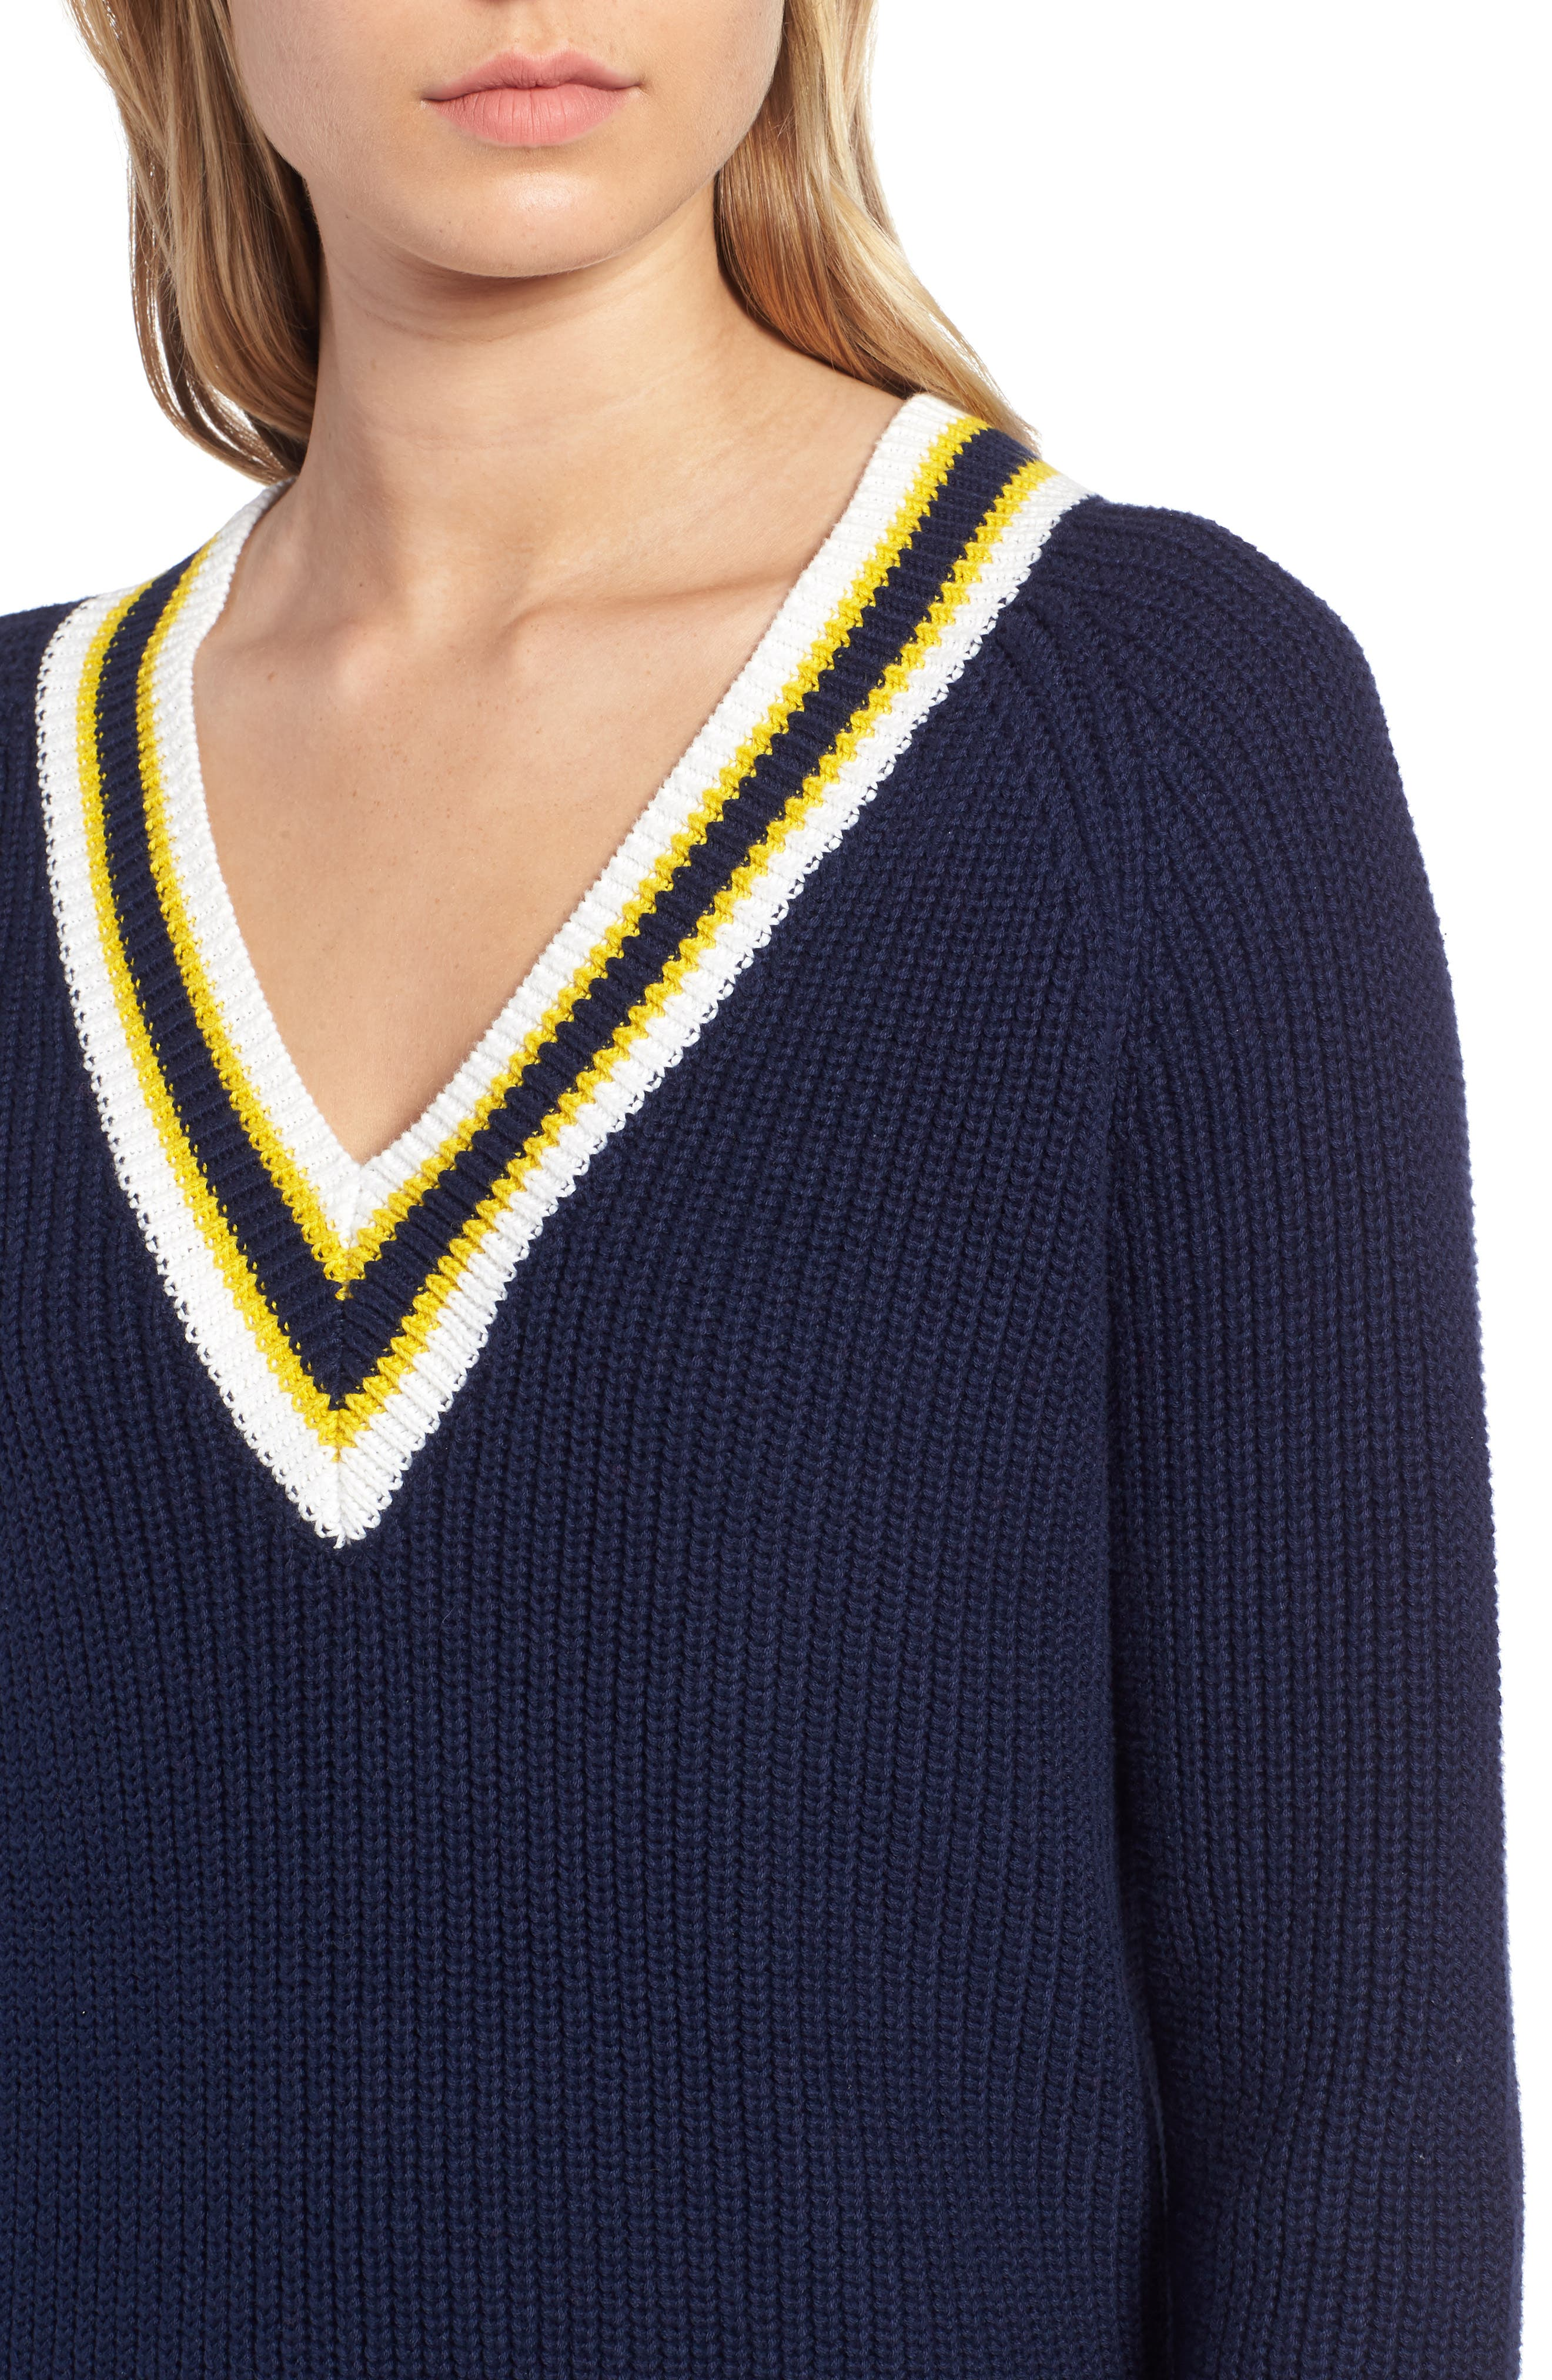 Tennis Sweater,                             Alternate thumbnail 5, color,                             410